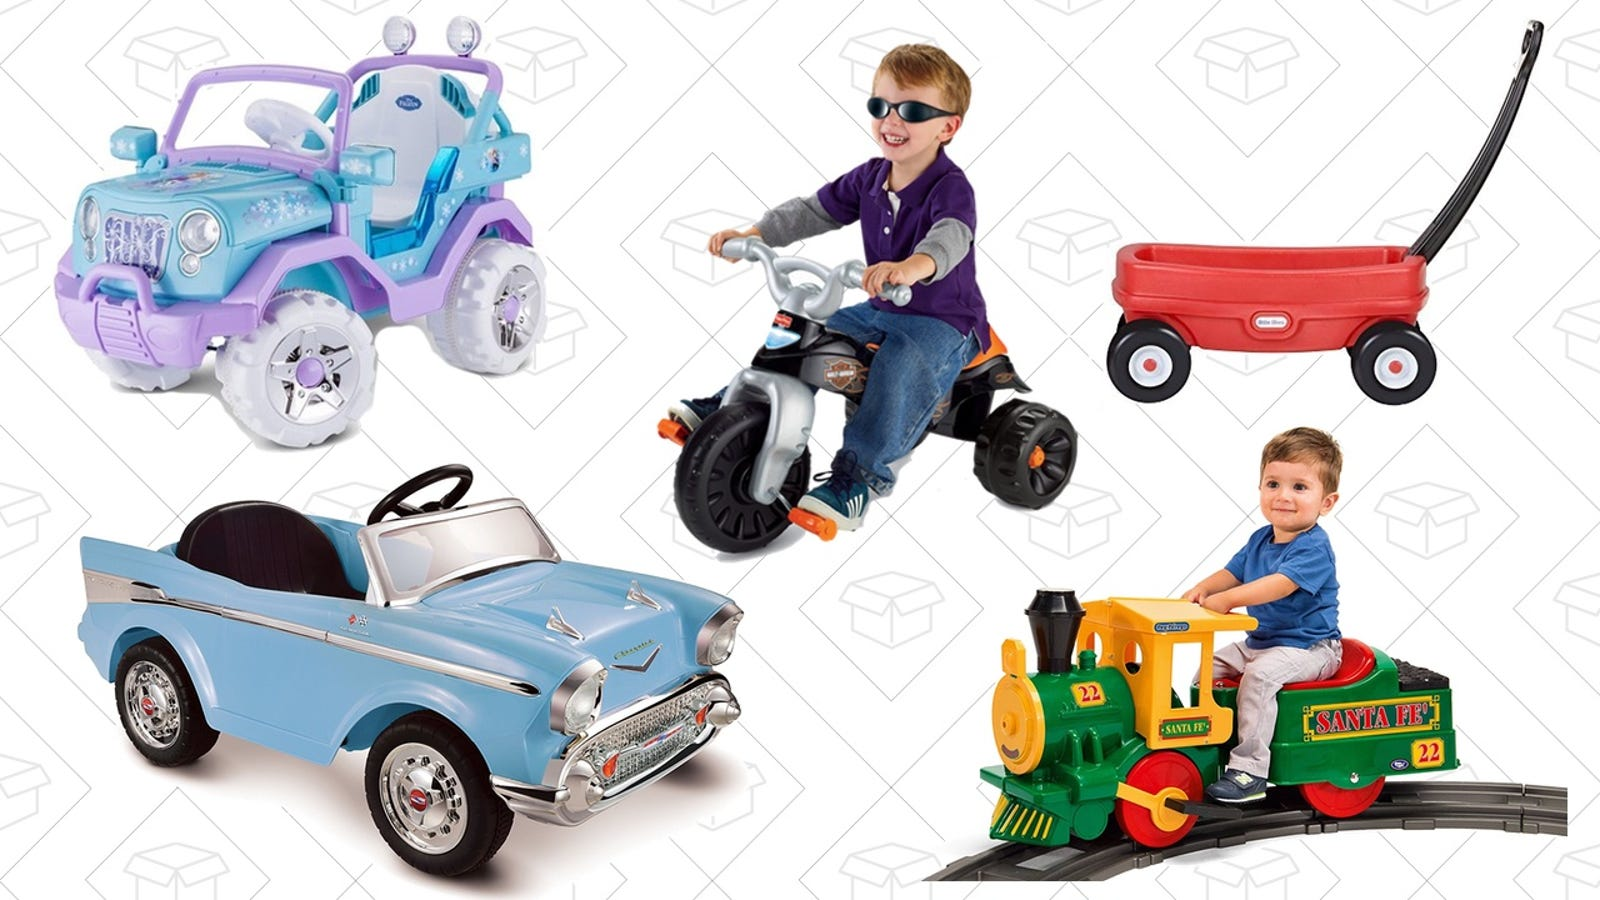 Give Your Kids Some Discounted Wheels With This Amazon Gold Box Fisher Price Harley Davidson Ride On Tough Trike